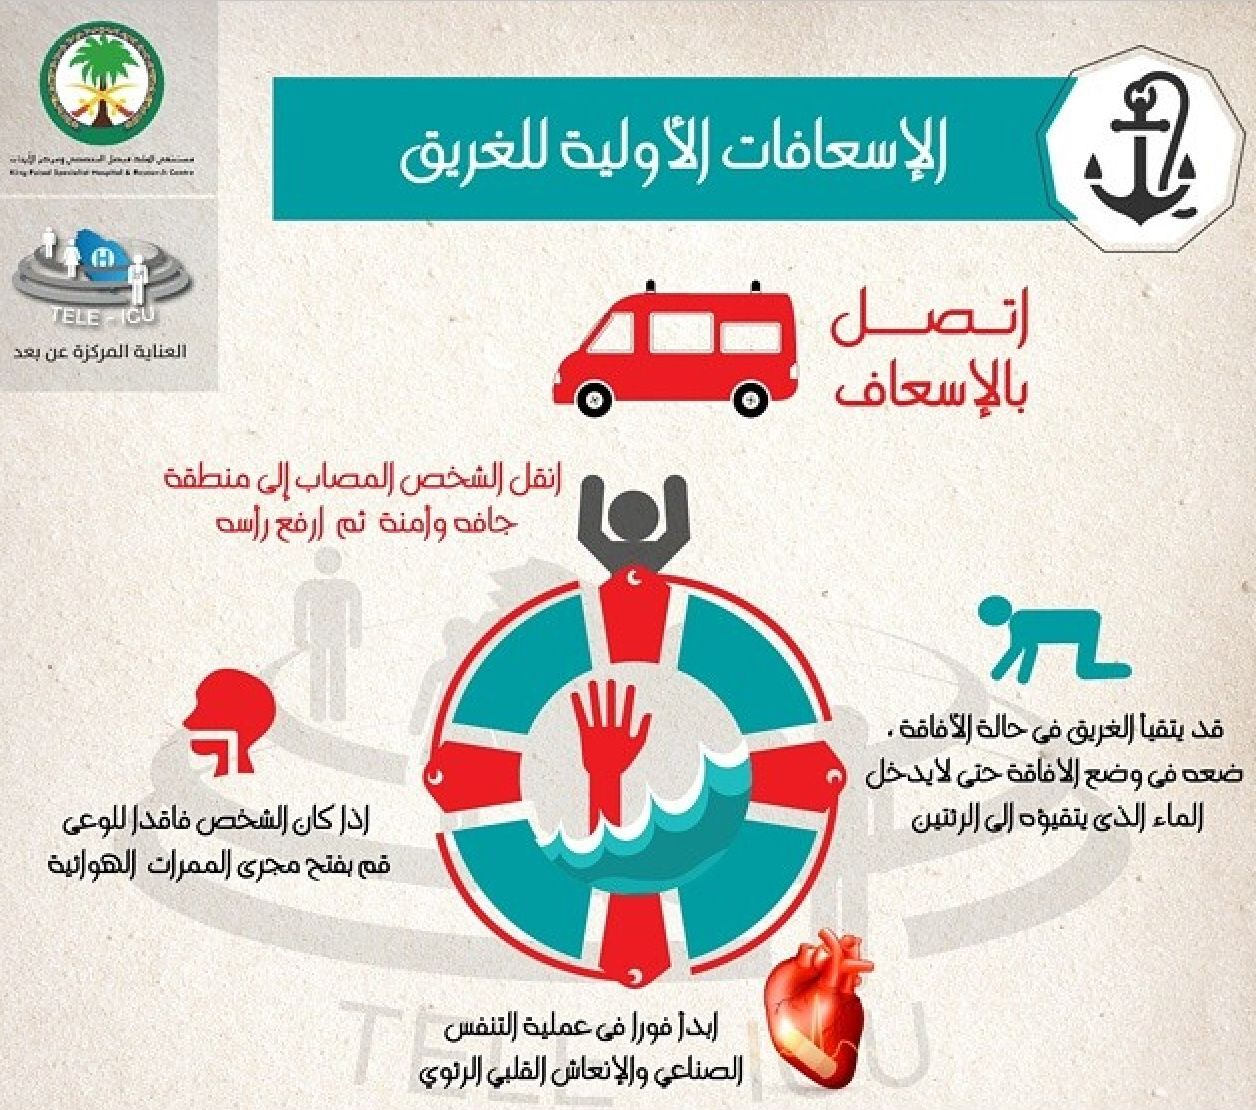 Pin By Hassan On الاسعافات الأولية Health And Fitness Expo Emergency Room Health